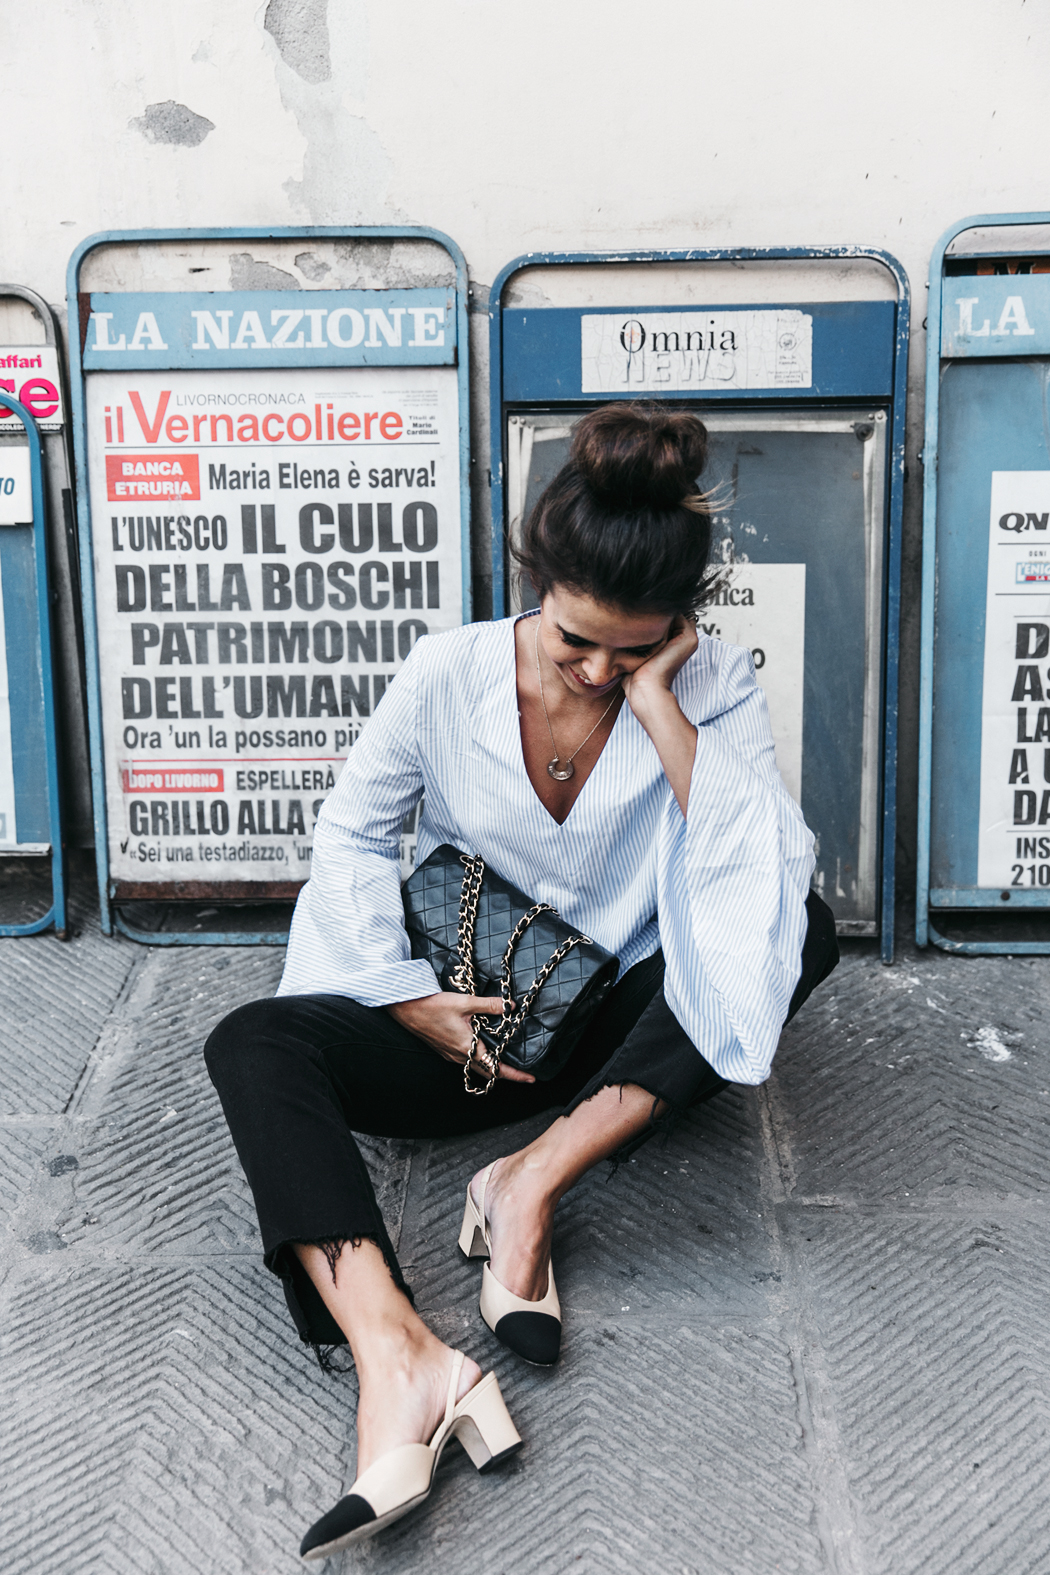 Florence-Collage_On_The_Road-Black_Jeans-Chanel_Slingback_Shoes-Blue_Shirt-Uterque-Topknot-Outfit-62